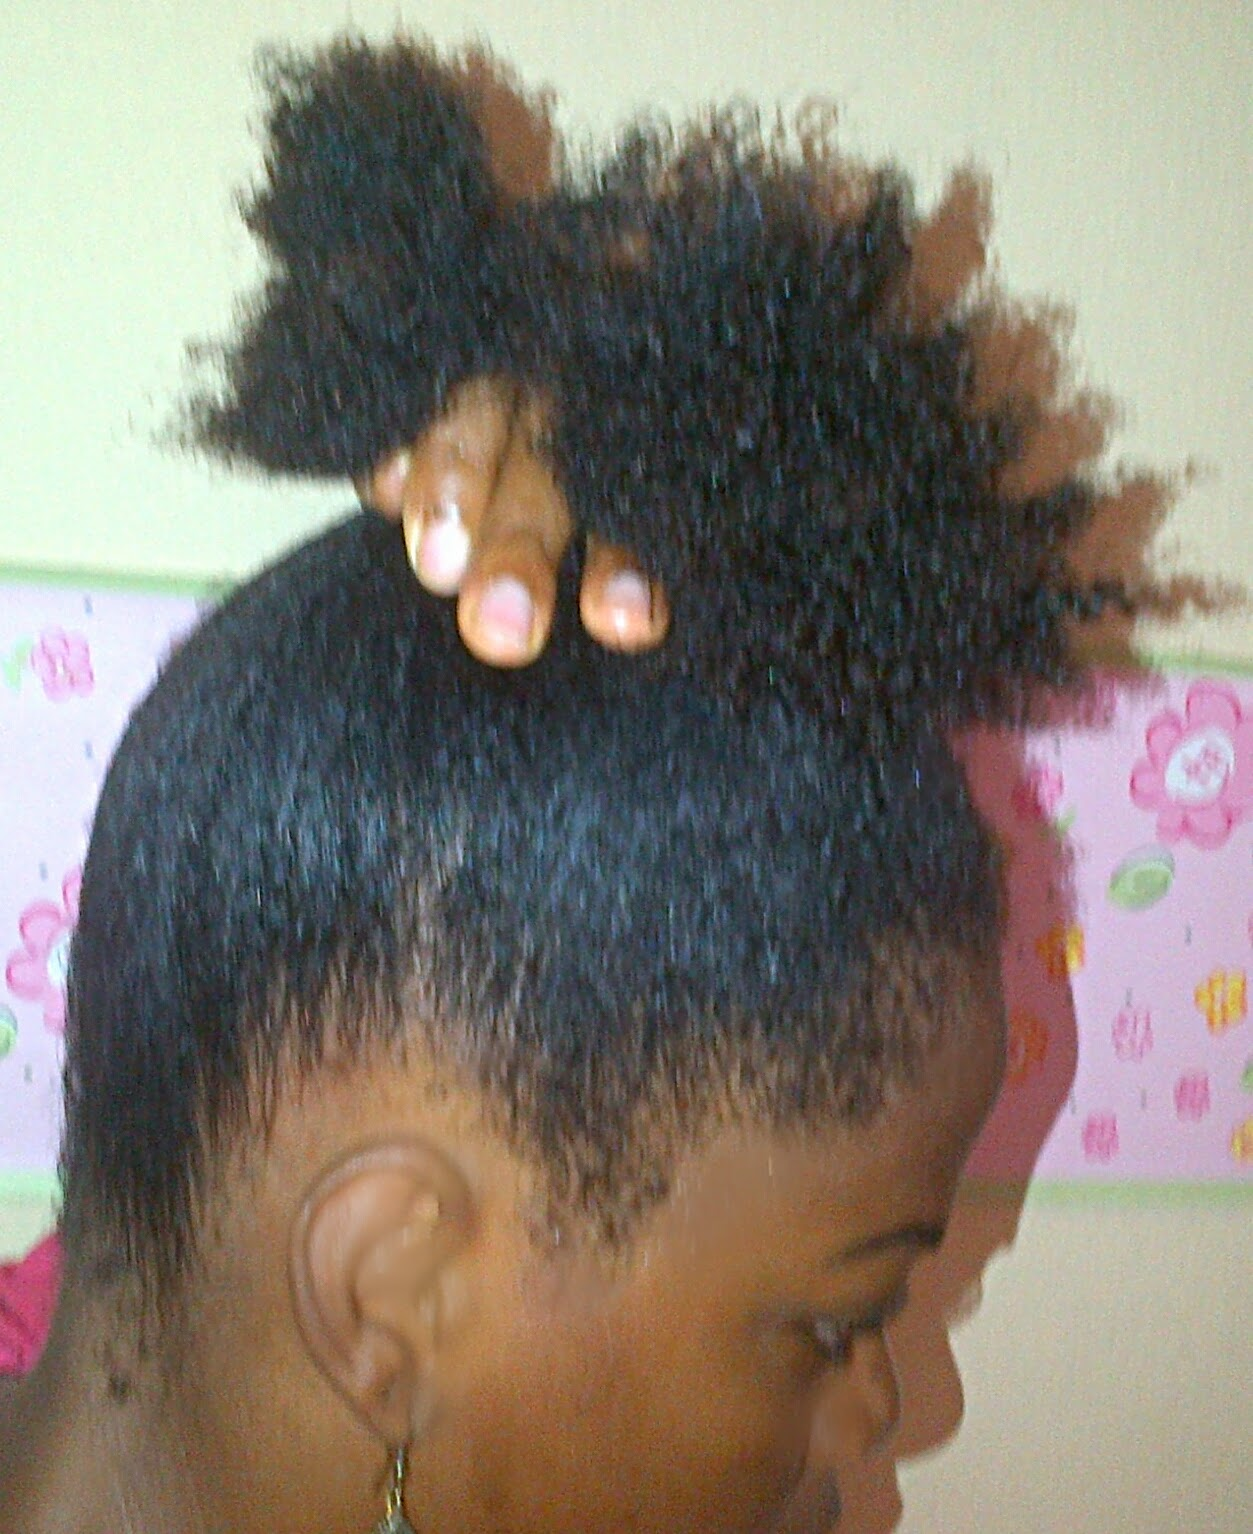 Ponytail without hair band - Splitting The Ponytail In Two Helps People With Shorter Hair Achieve A High Ponytail Which Would Ordinarily Be Difficult To Do Without Using Bobby Pins To